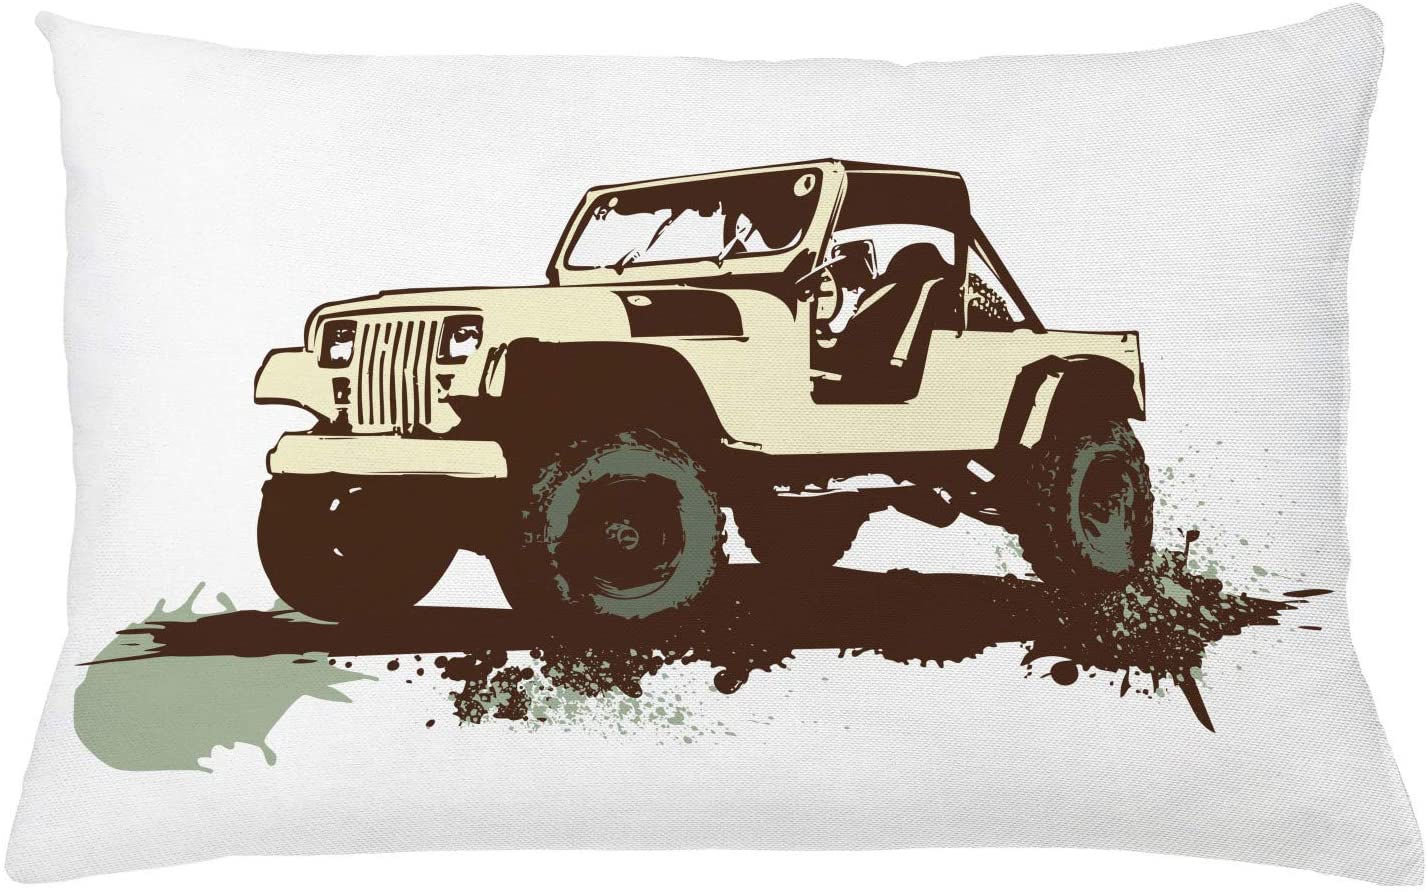 Lunarable Grunge Throw Pillow Cushion Cover, Retro Pop Art Style Vintage Car on The Road Adventure Graphic Design, Decorative Rectangle Accent Pillow Case, 26